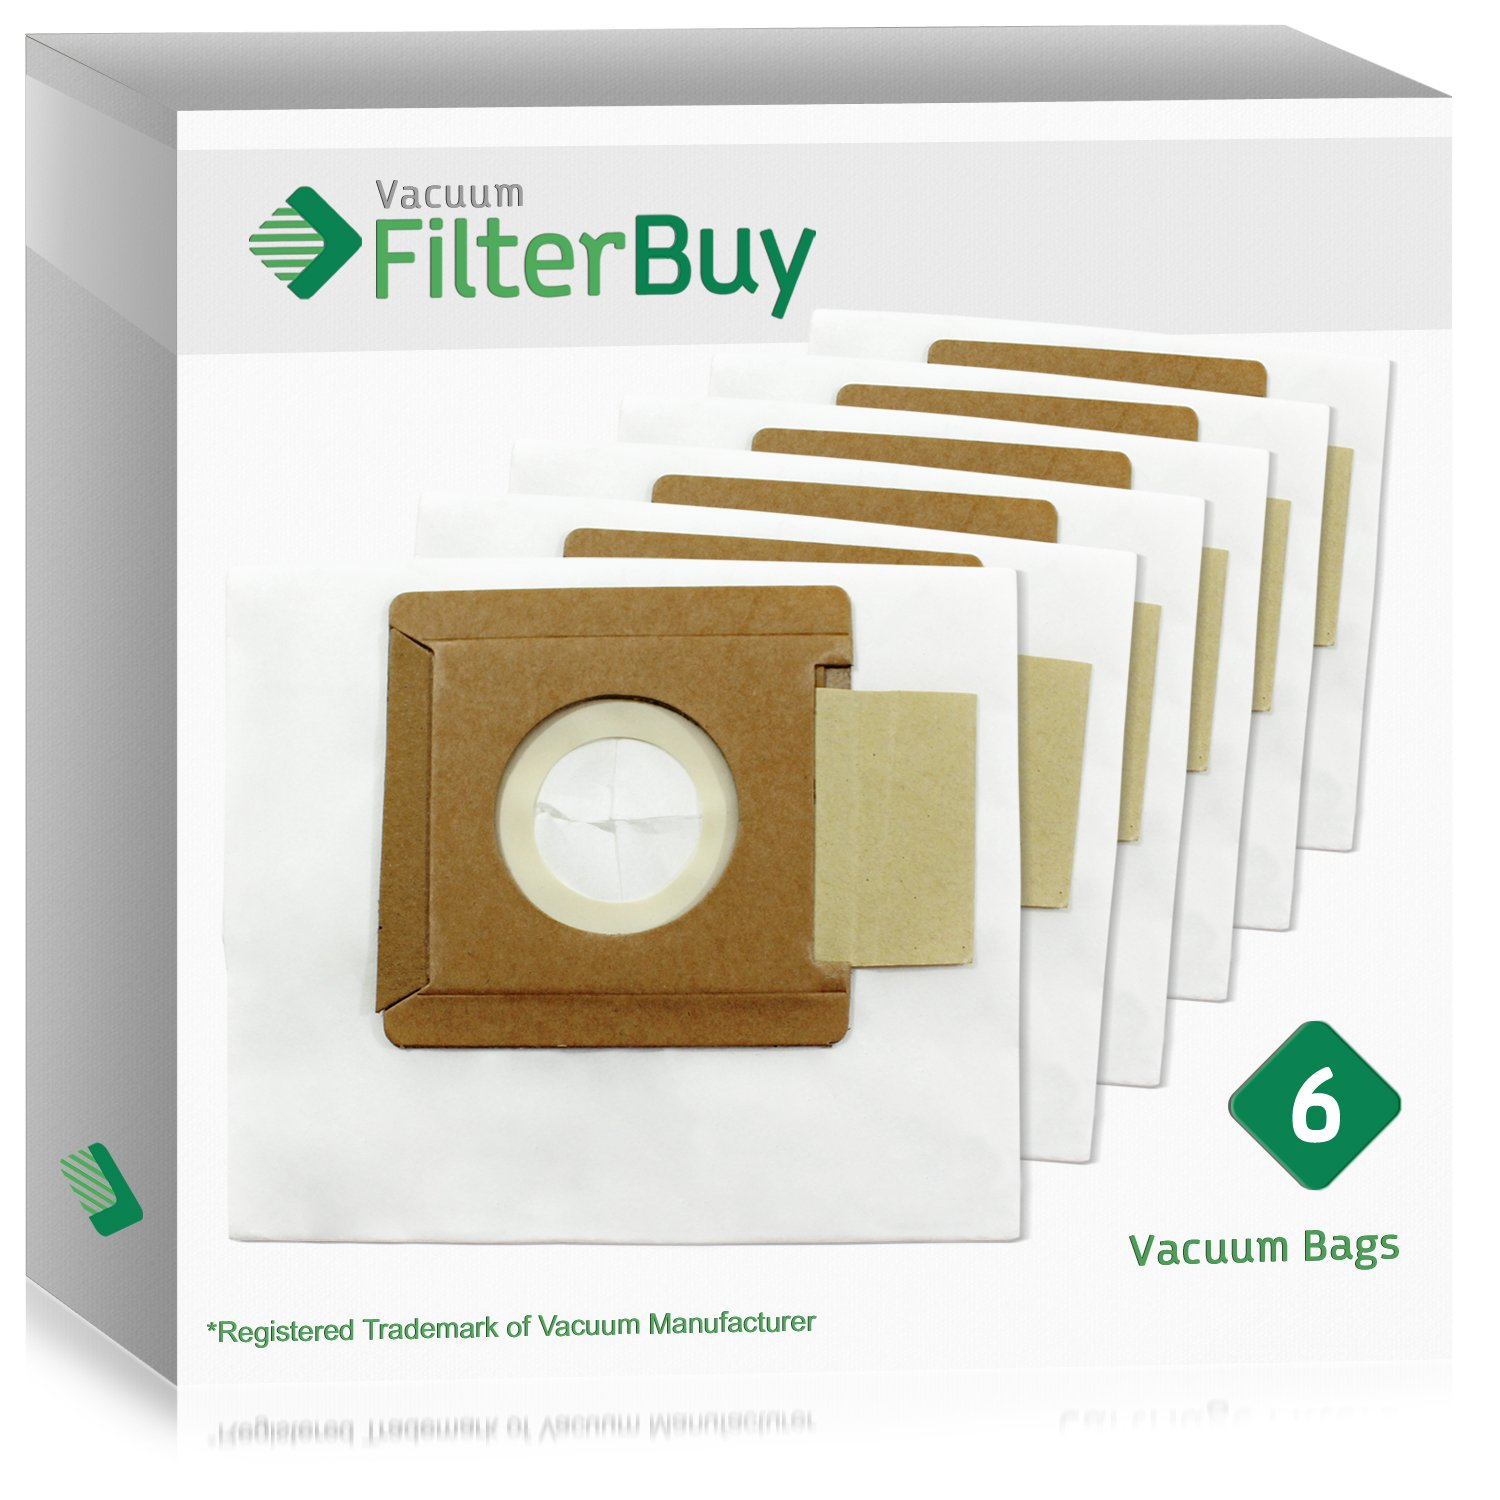 6 - FilterBuy Dirt Devil Type O Replacement Vacuum Bags. Designed FilterBuy to fit Dirt Devil Tattoo Canister Vacuum Cleaners.